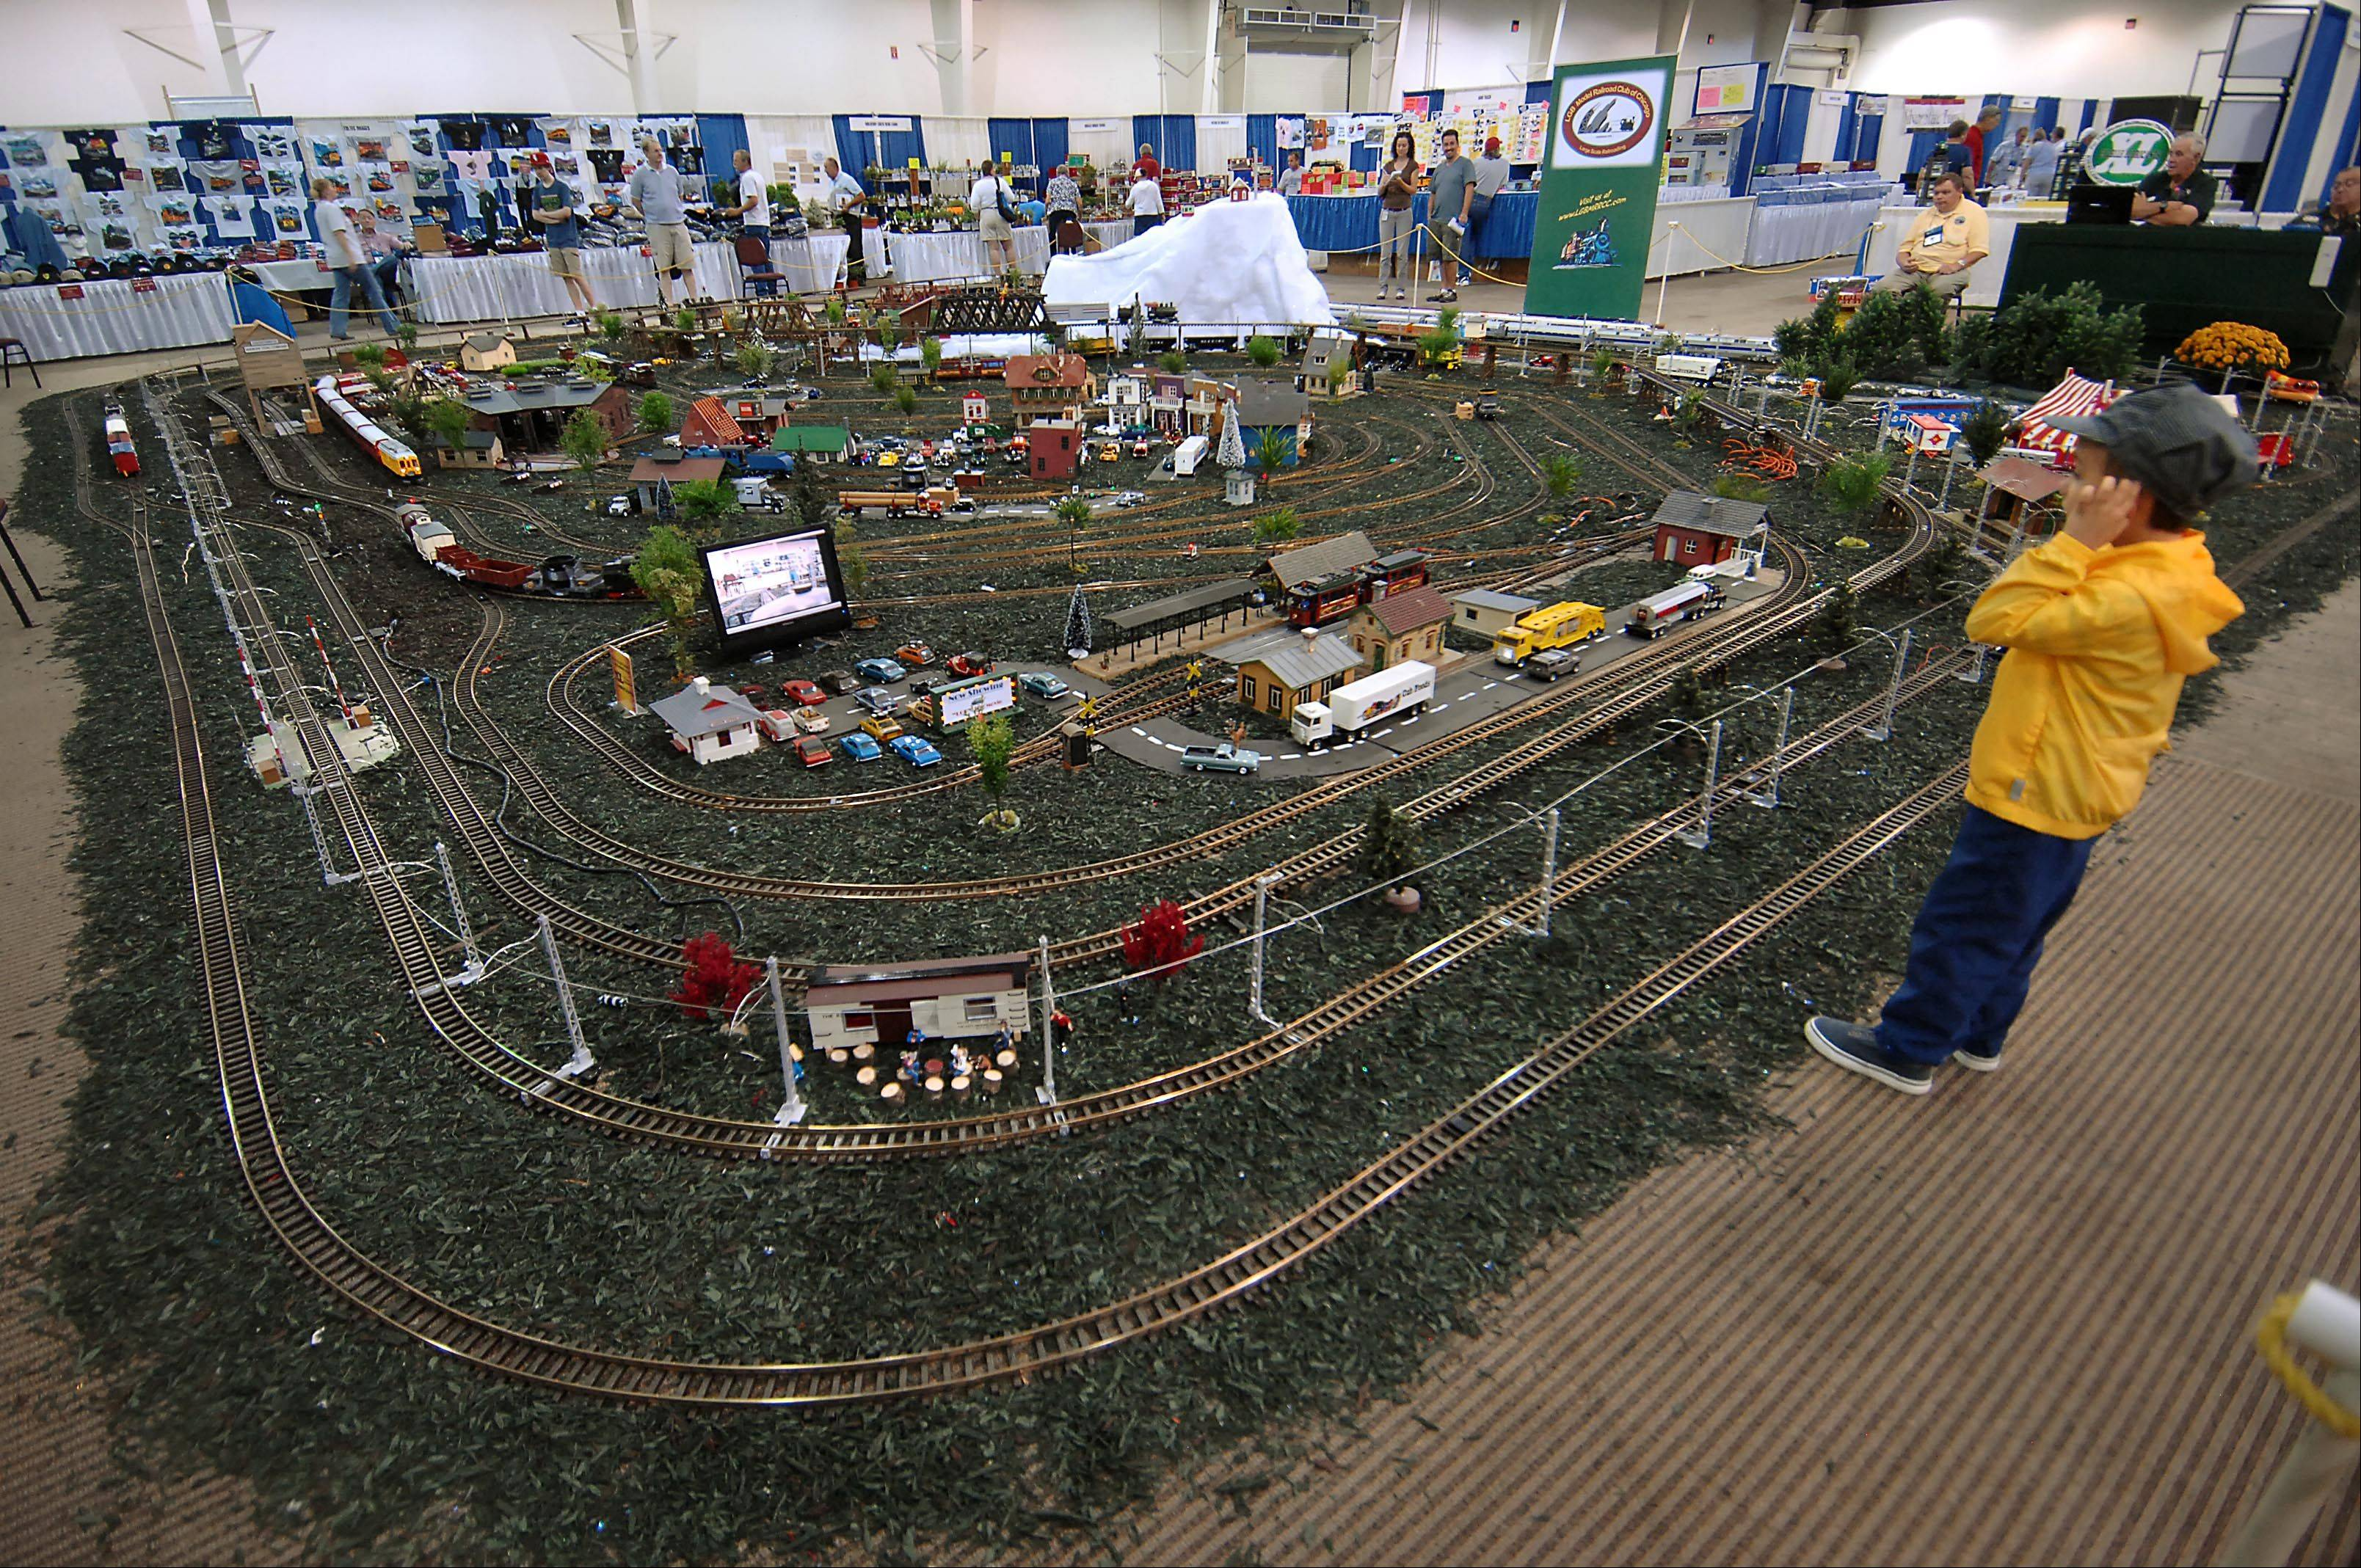 David Jovic, 5, stares at a huge model train layout while wearing his conductor's hat Sunday at the 28th National Garden Railway Convention in St. Charles. He was with his dad Ray, of Lake Zurich.